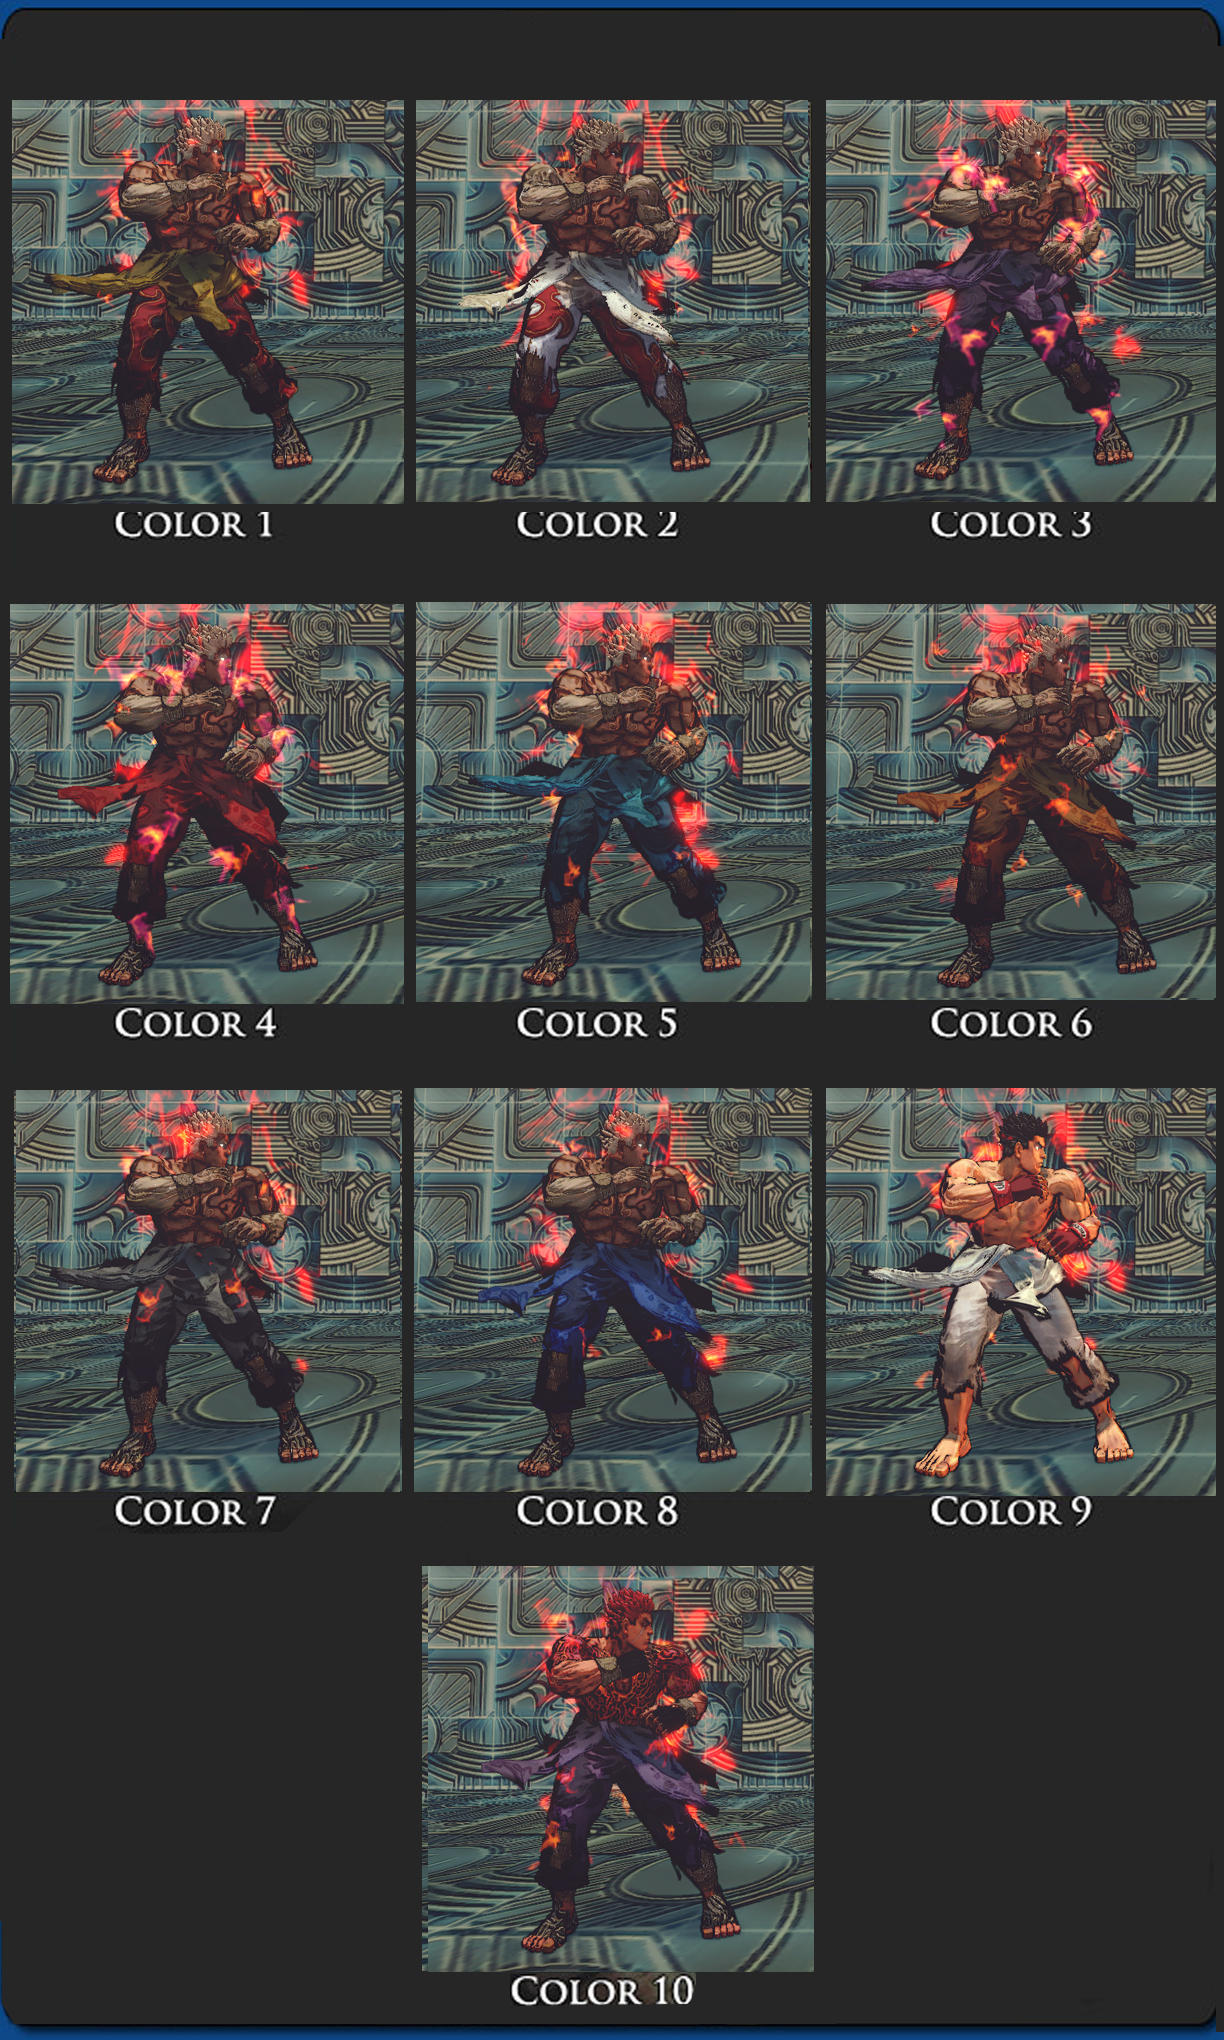 SSFIV Evil Ryu Asura's Wrath Vol 2 10 colors pack by monkeygigabuster